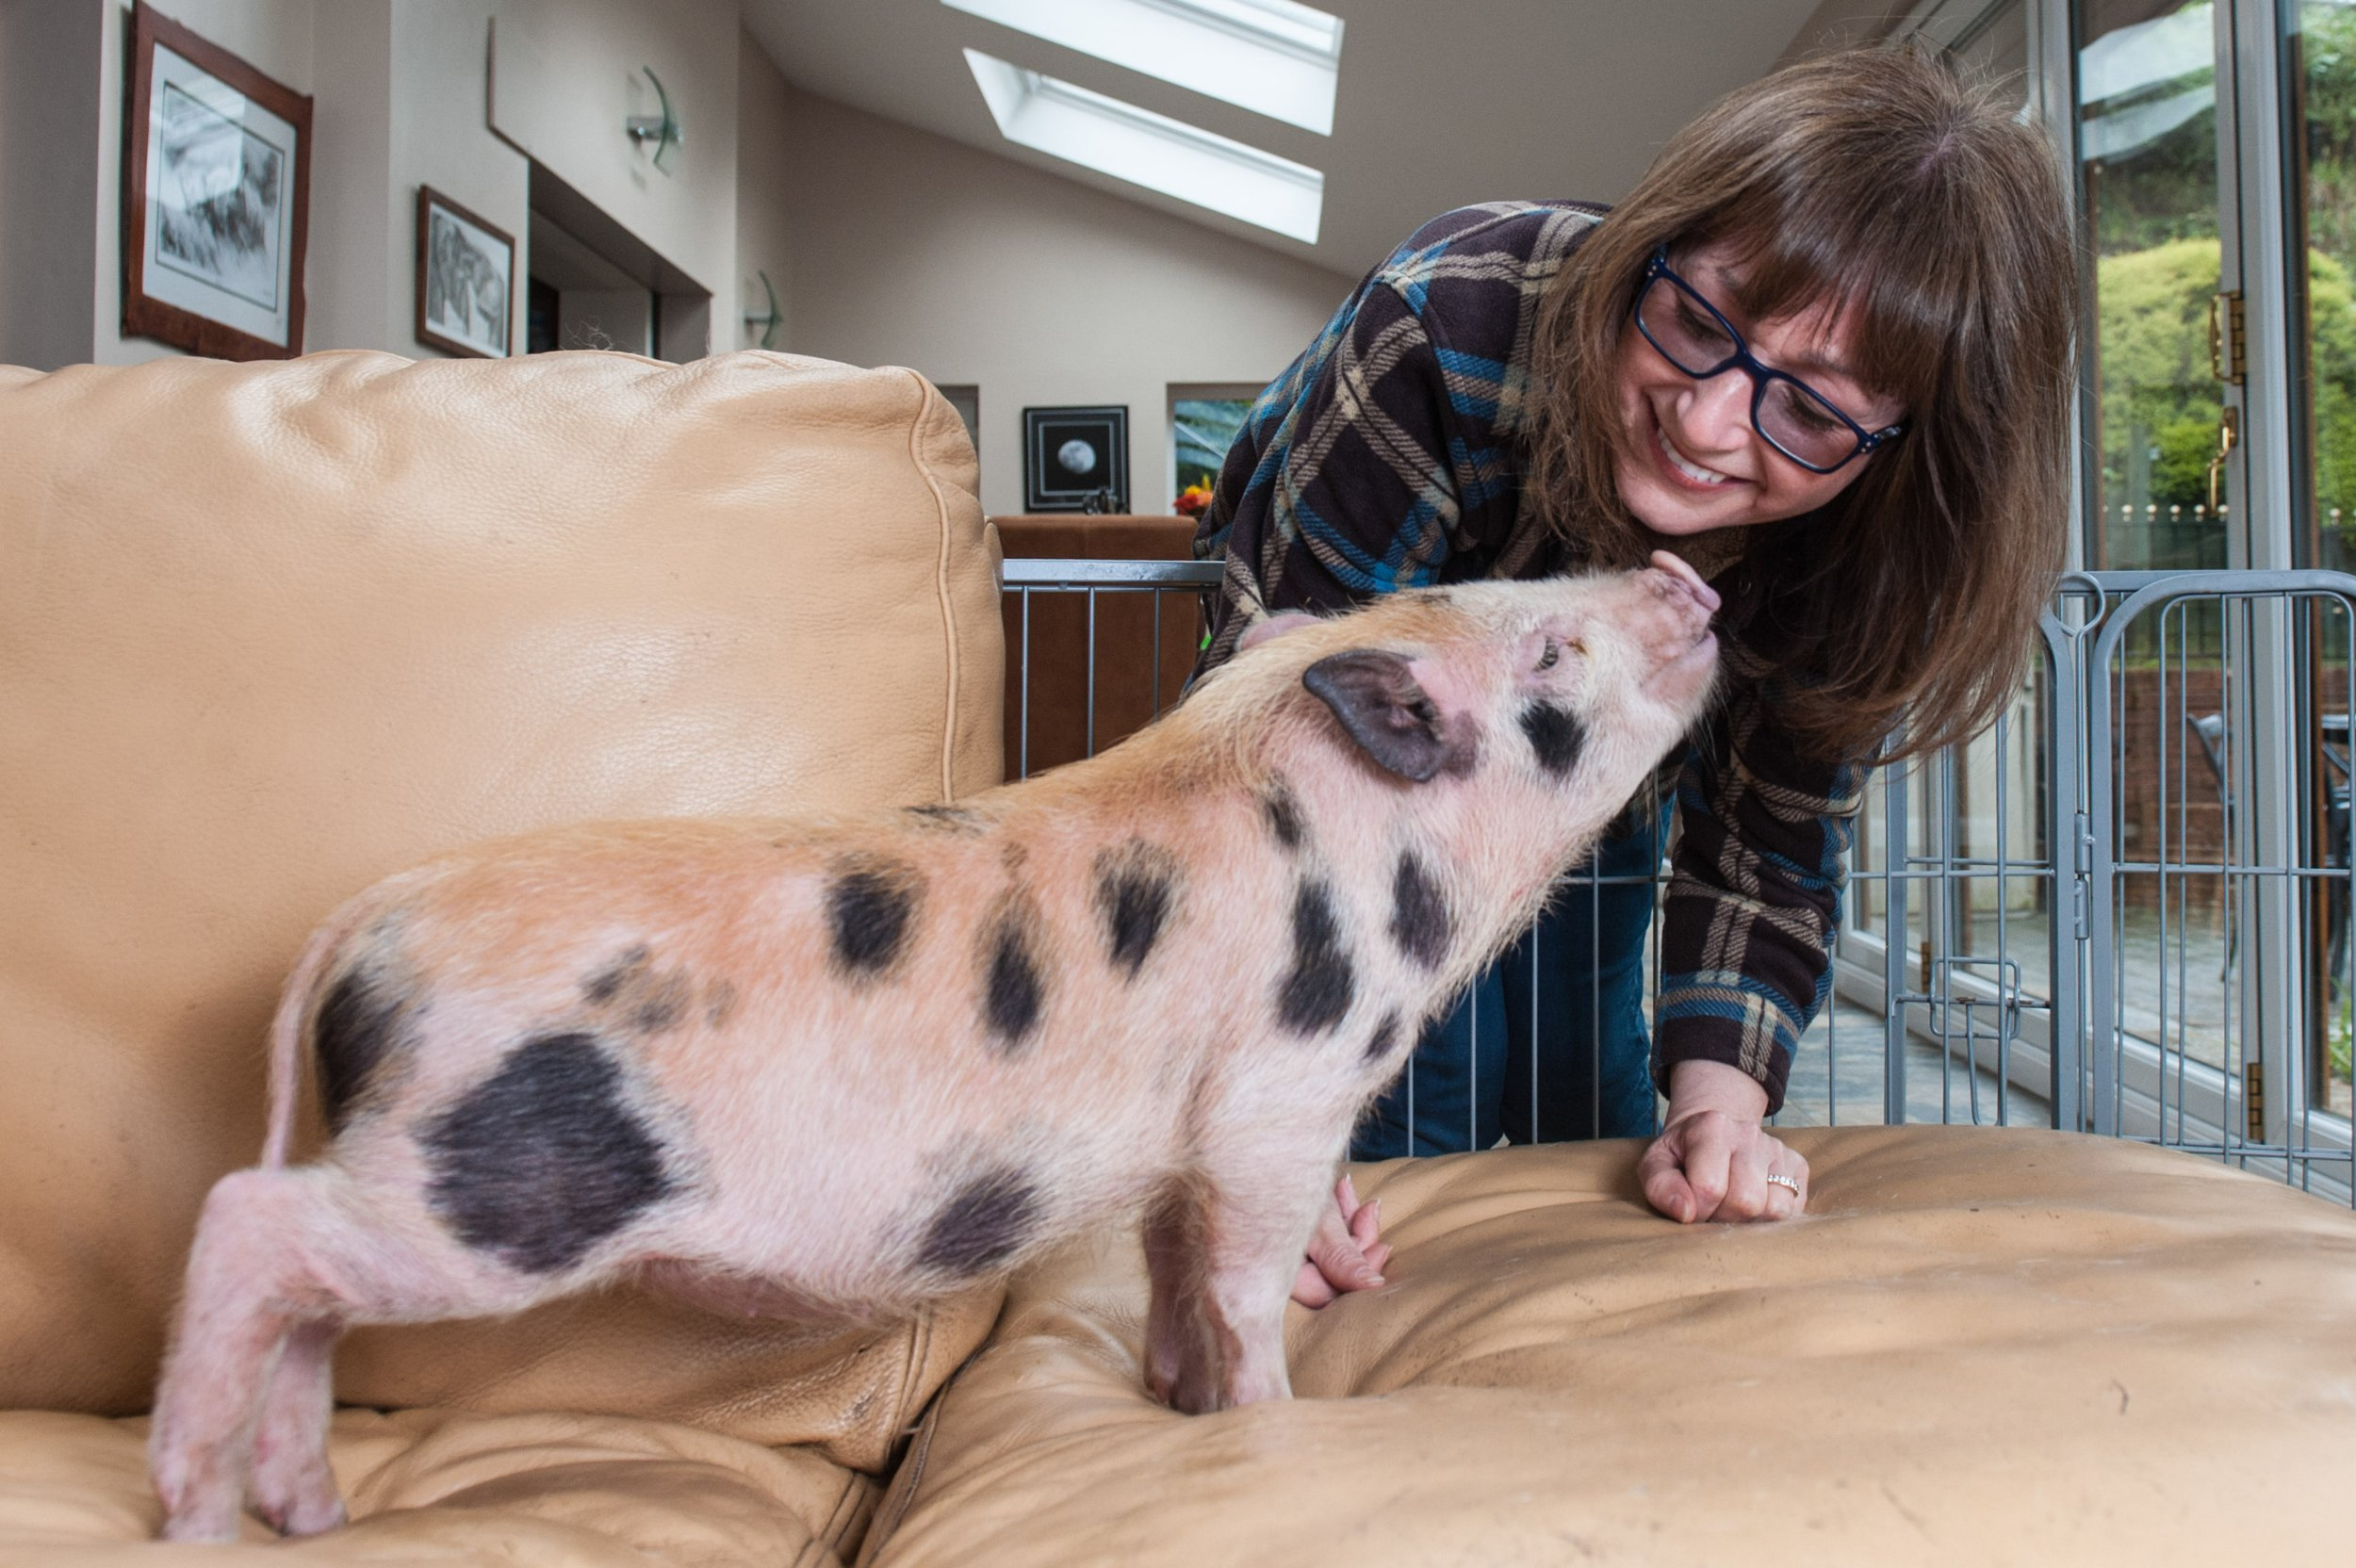 MERCURY PRESS. 26/04/18. Rochdale, UK. Pictured: Piglet Ollie is the size that most micro pig owners assume their new pet to stay at, unfortunately this is not the case at all. Ollie was rescued from Leeds on 31st March, from being bait in a dog fight. A pig sanctuary owner has been forced to take in over 100 micro pigs after owners ditched them when they discovered they grew to full-size. Janet Devereux, the founder of Pig Inn Heaven sanctuary, says there is no micro in micro pig after seeing dozens of people duped into thinking they were buying the tiny animals. In her saddest cases she has come across a small pig that was being sold in a pub for dog fights and another which was being starved to death to stop it growing. Janet set up her sanctuary in 2007, the same year that Paris Hilton was pictured carrying a pig in her handbag when she realised they might become a problem. SEE MERCURY COPY